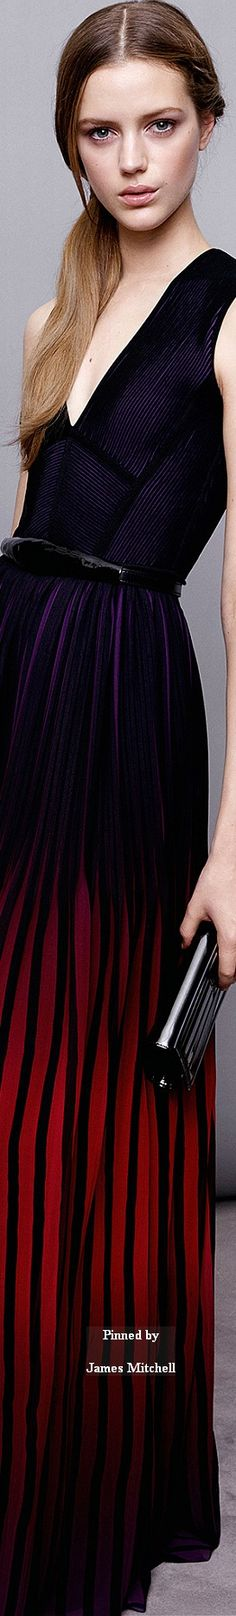 Elie Saab Collection Pre-Fall